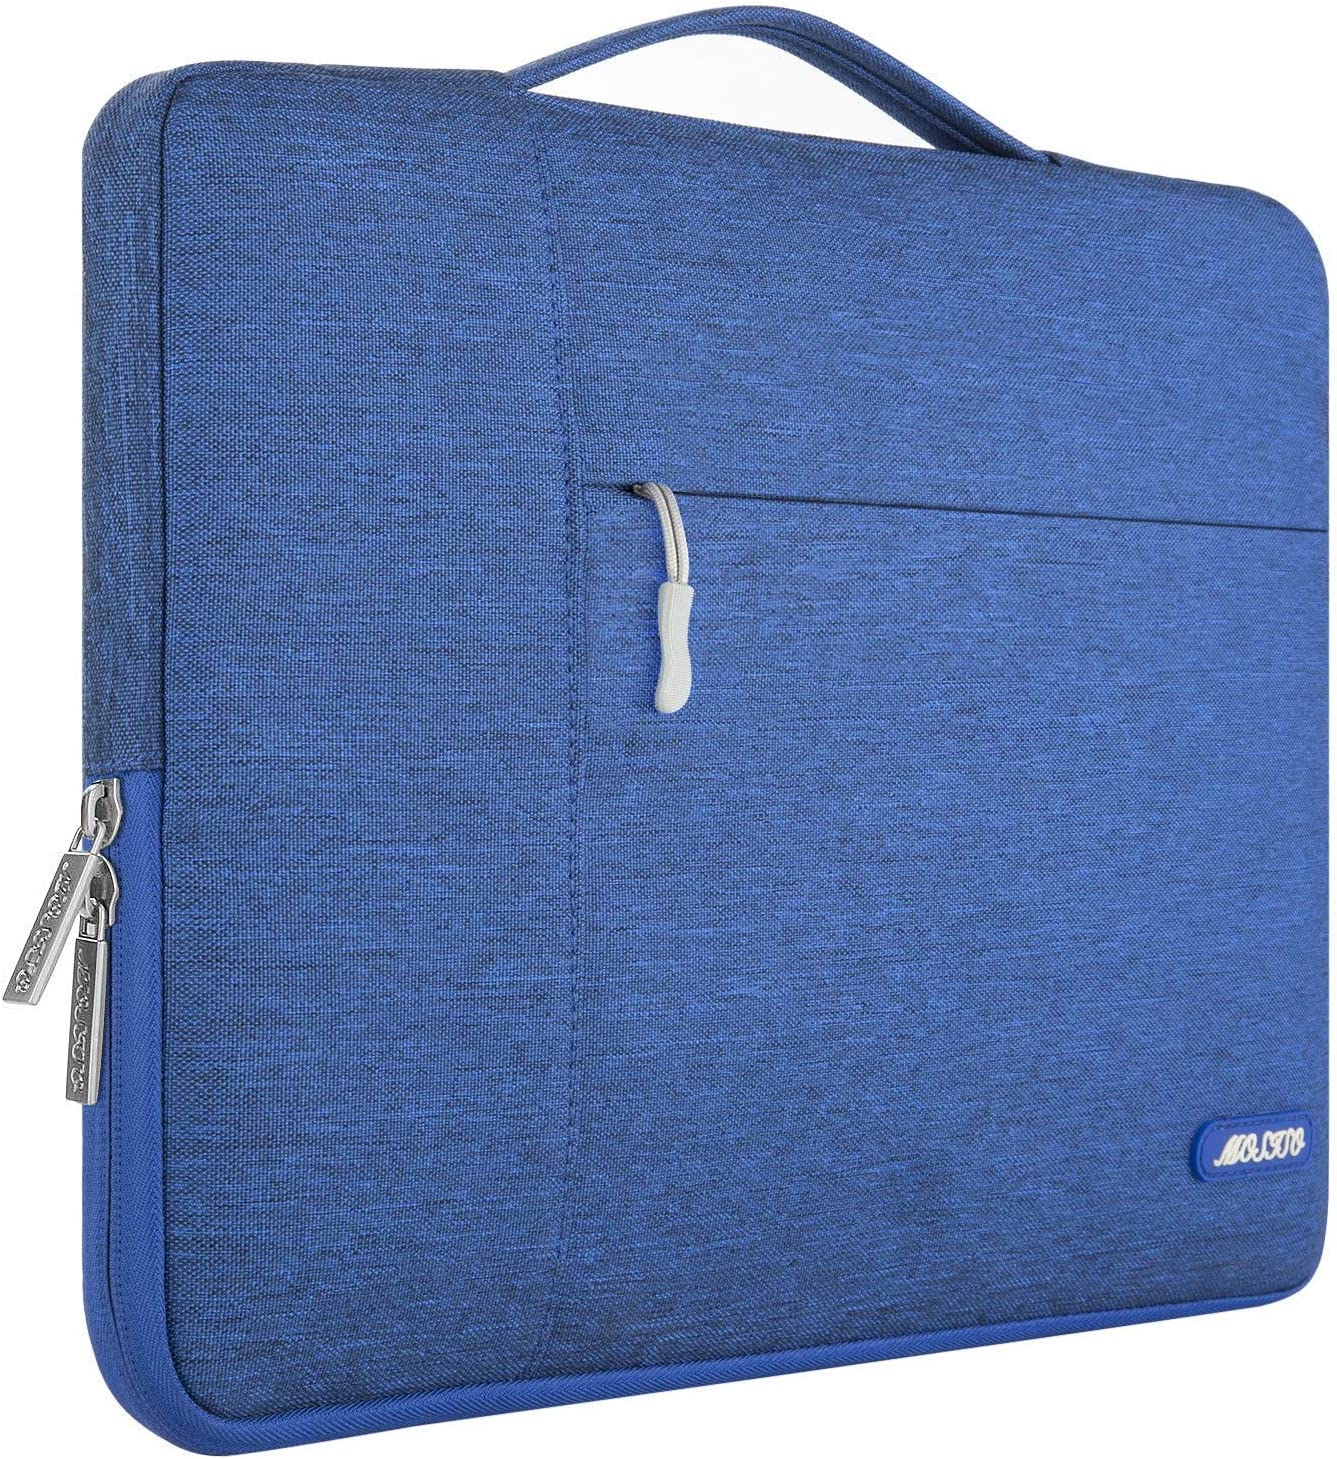 MOSISO Laptop Sleeve Compatible with 13-13.3 inch MacBook Air, MacBook Pro, Notebook Computer, Polyester Multifunctional Briefcase Bag, Royal Blue